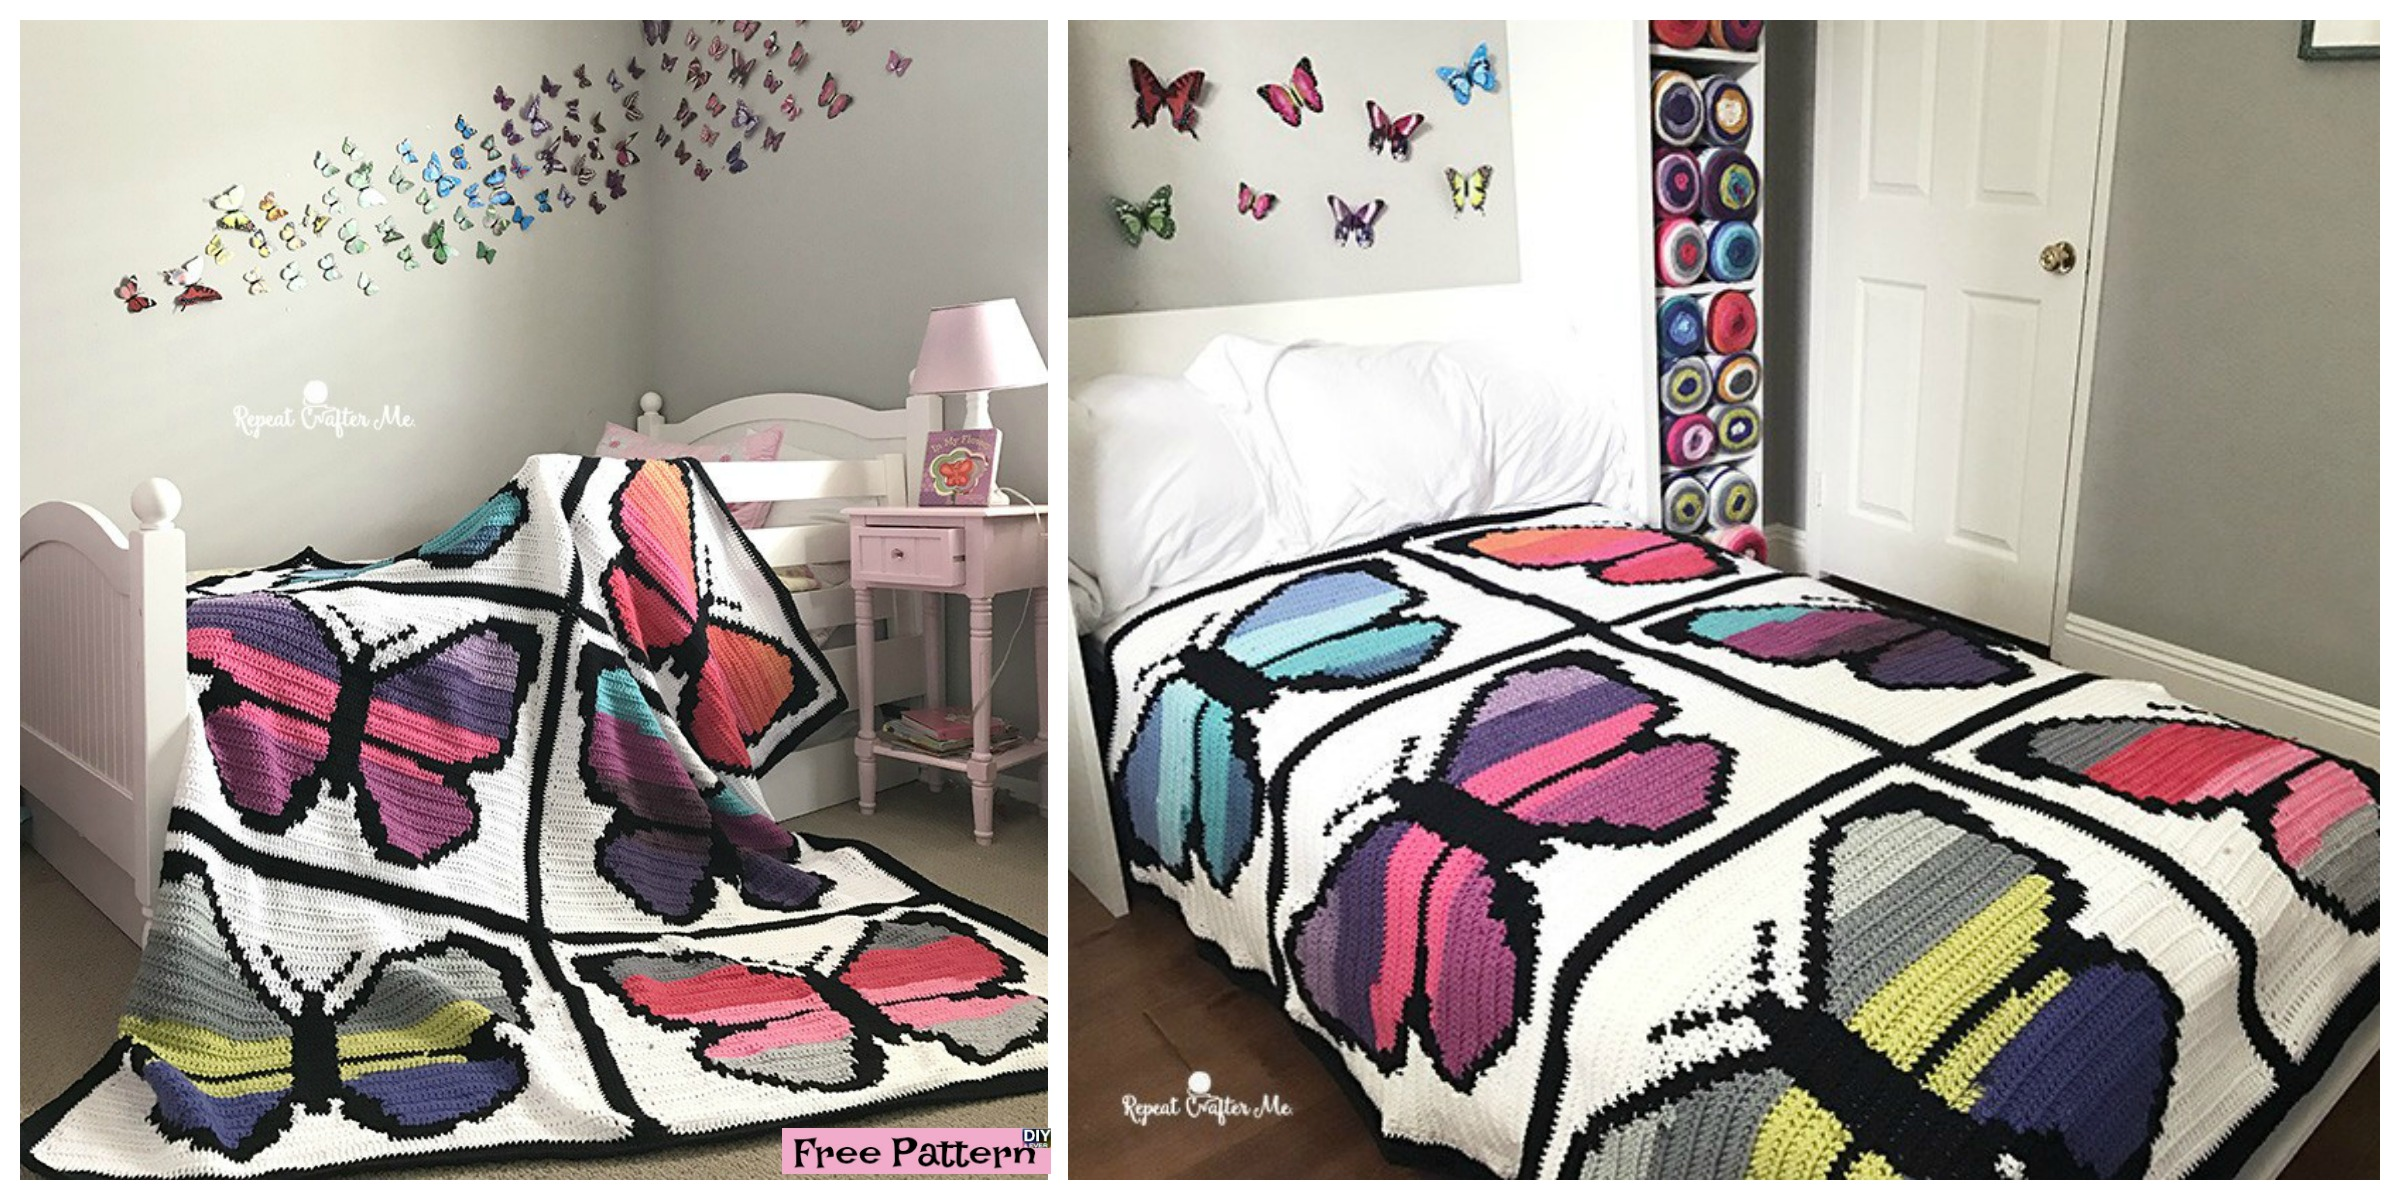 diy4ever- Crochet Butterfly Blanket - Free Pattern